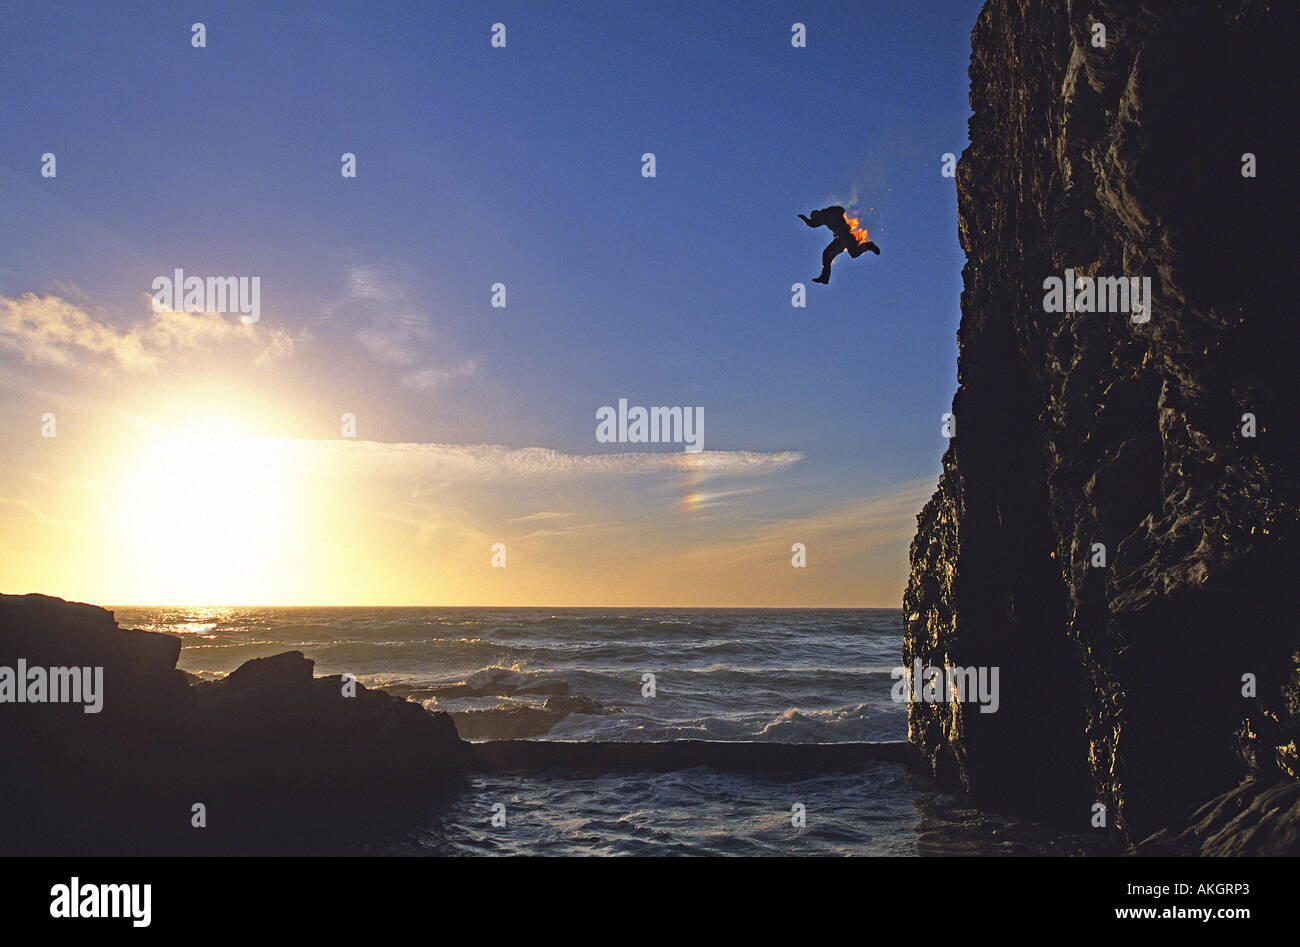 Man sets fire to himself and jumps off a cliff in Cornwall He extinguished himself in the sea water - Stock Image